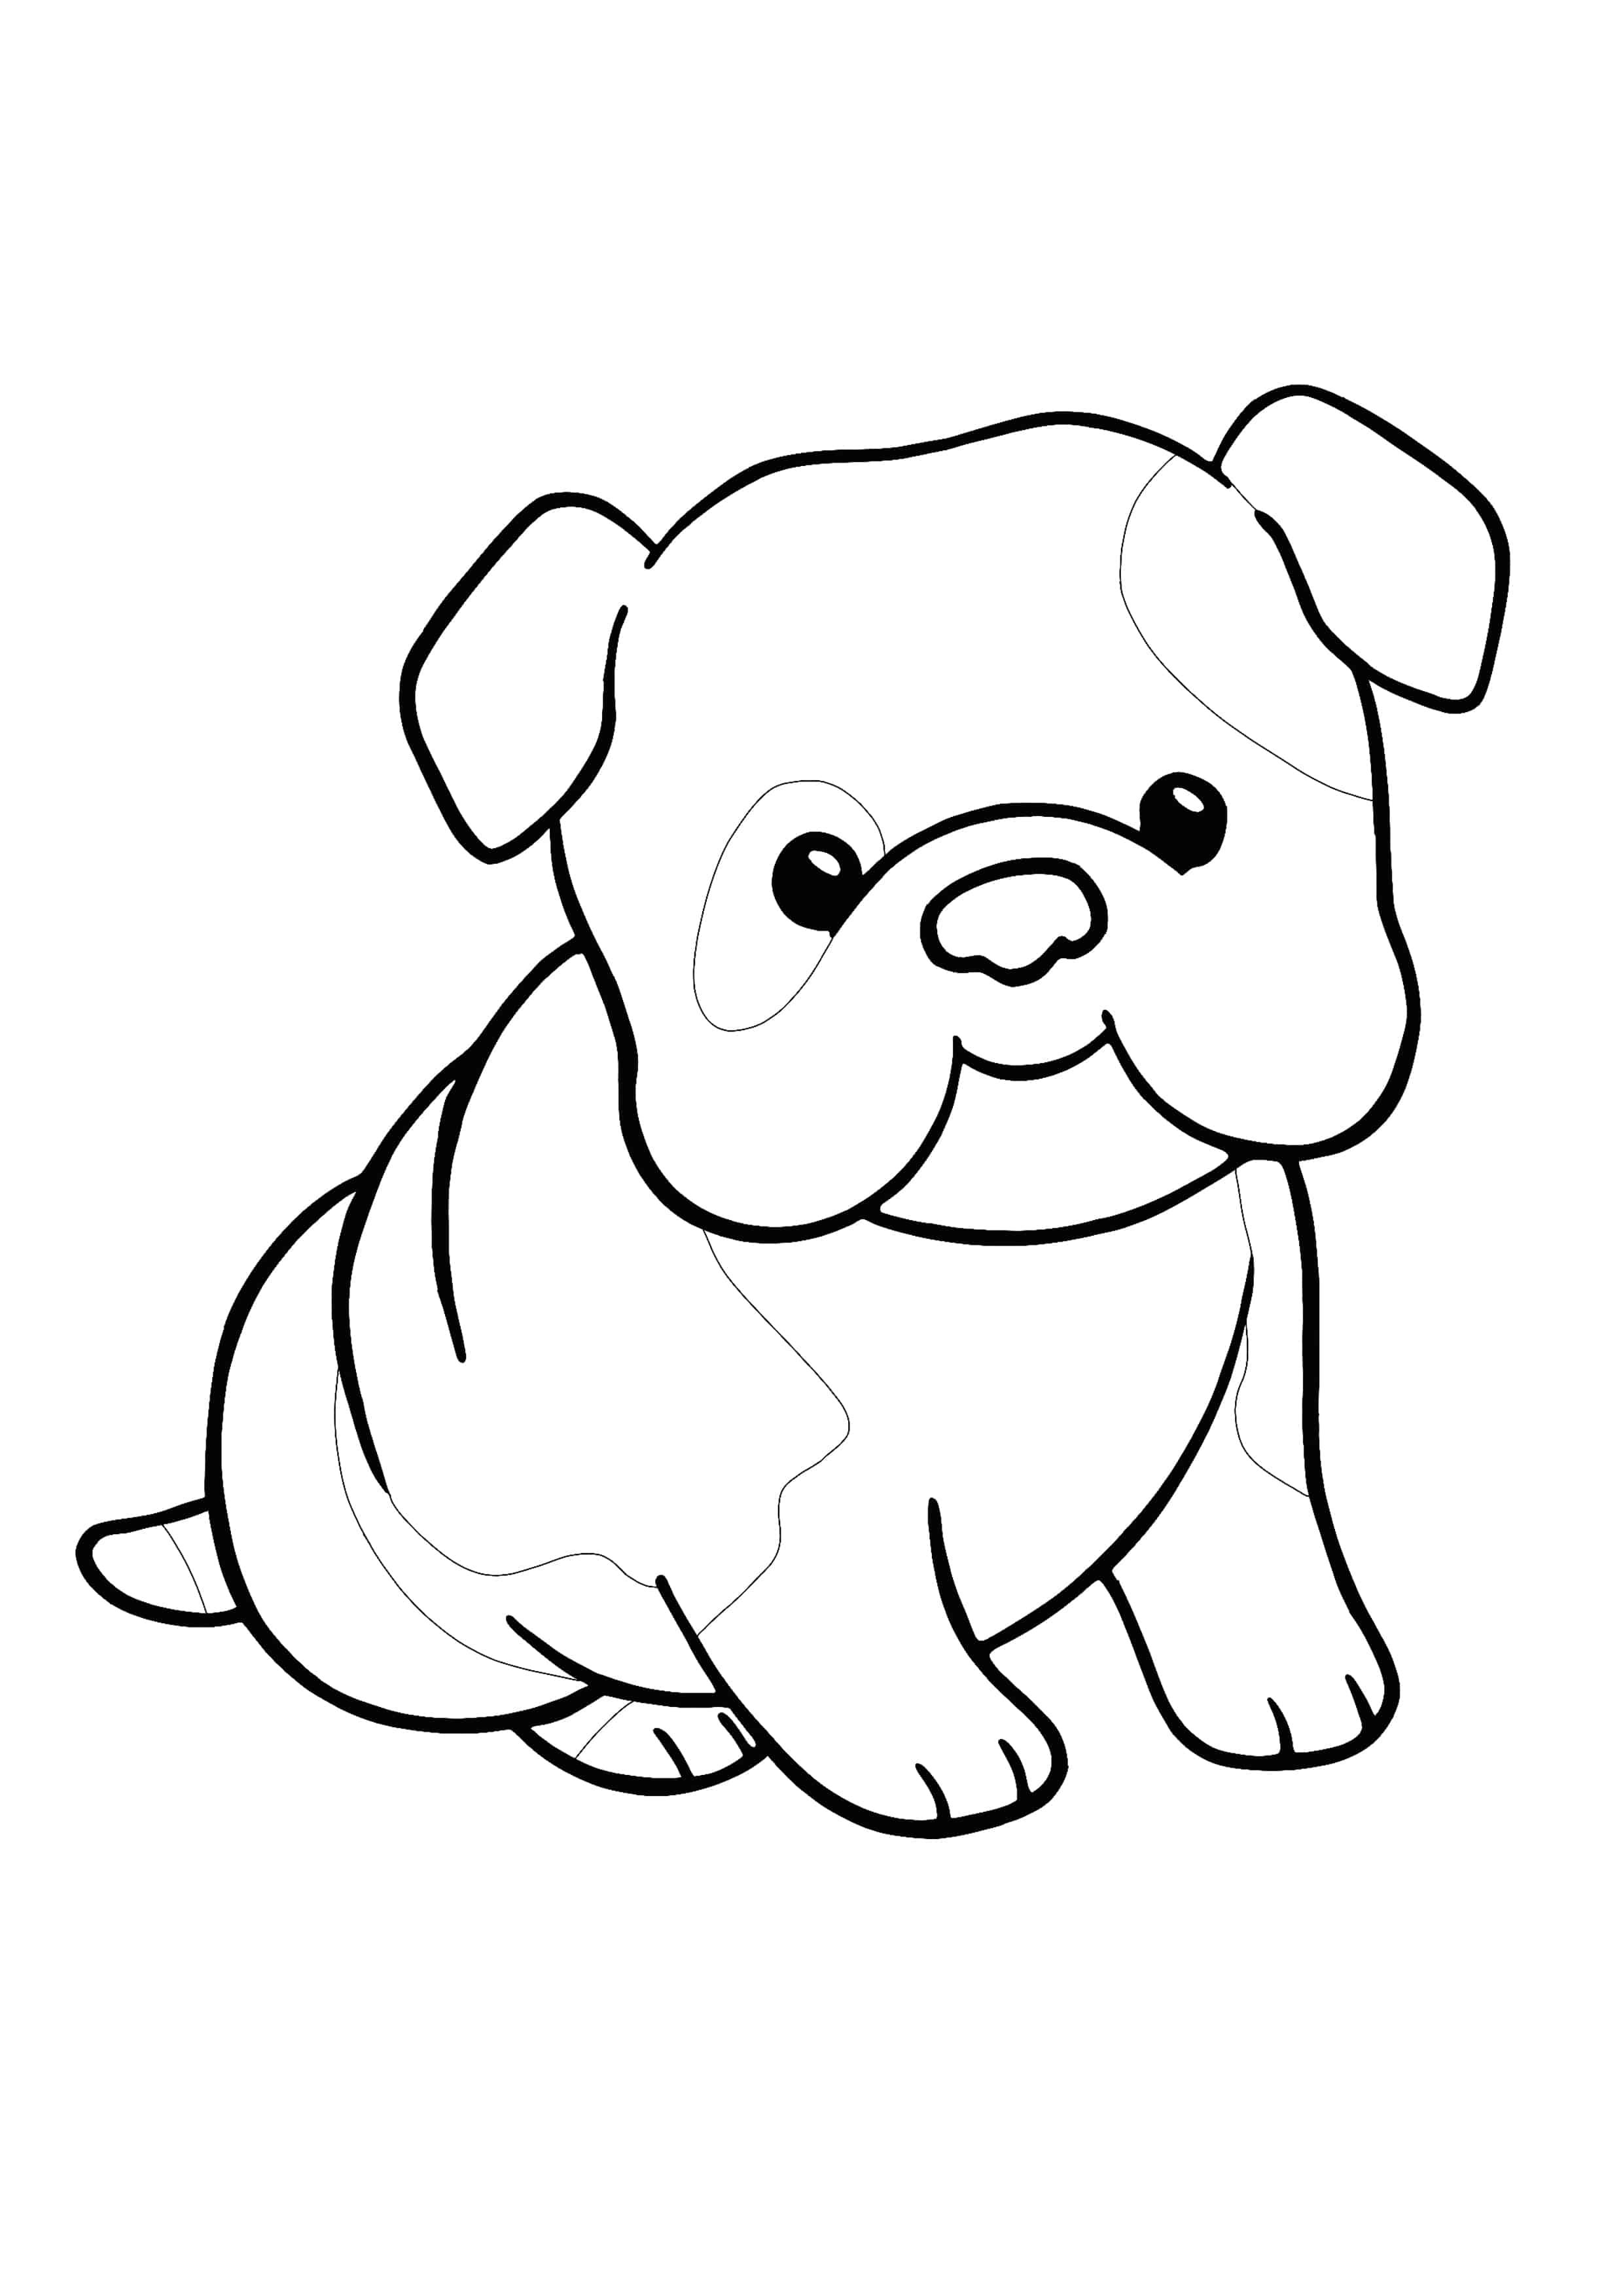 Kawaii Puppy Coloring Page For Kids Dog Coloring Page Puppy Coloring Pages Animal Coloring Sheets